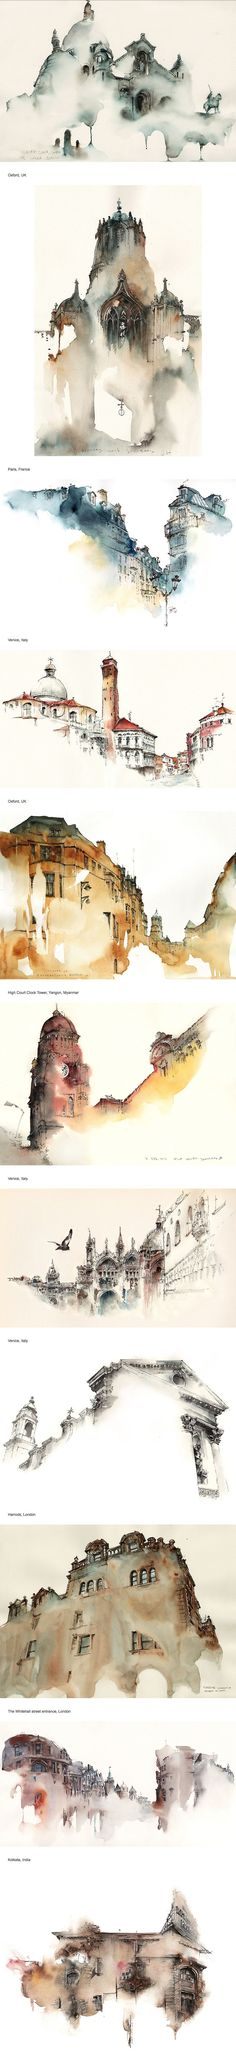 Elusive Architecture in Watercolors of Korean Artist Sunga Park